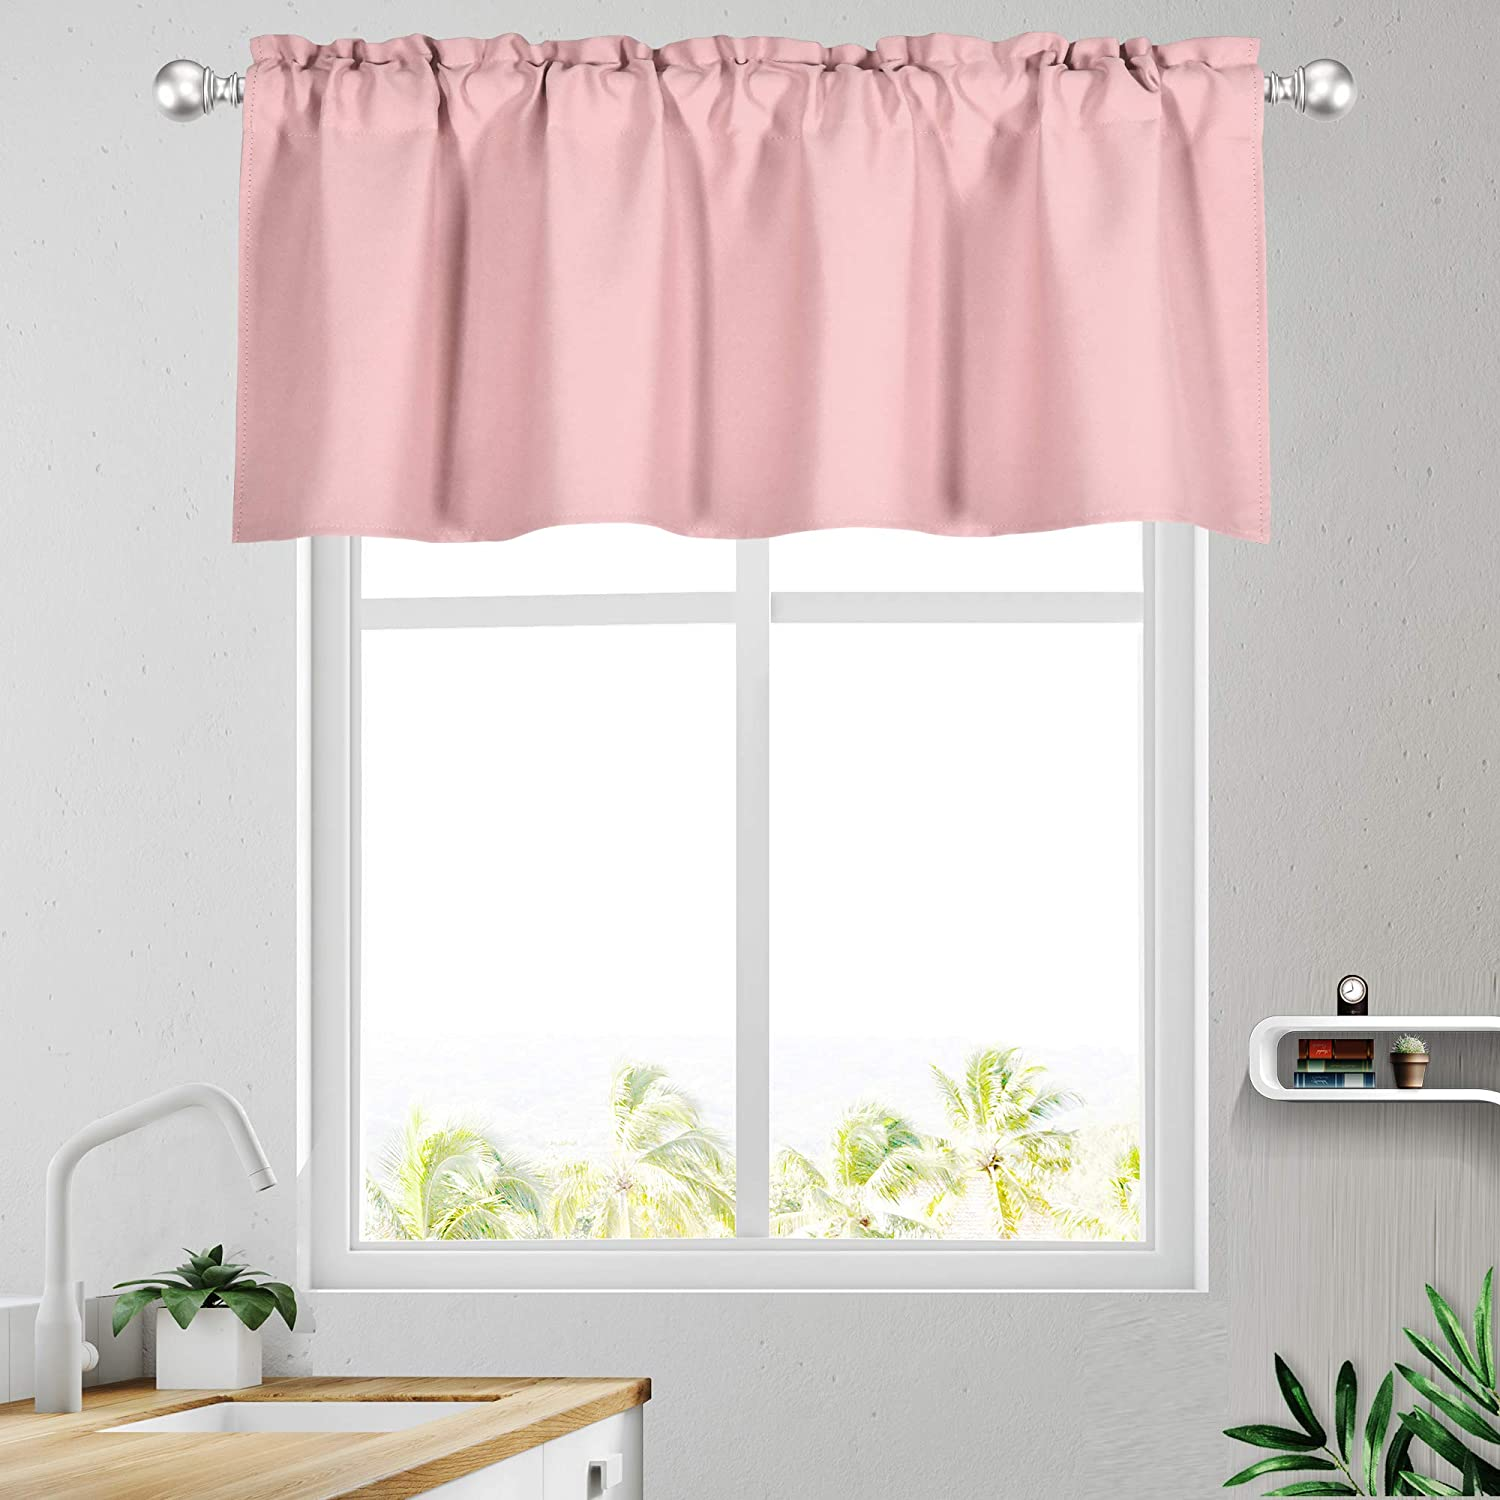 Amazon.com: KEQIAOSUOCAI Baby Pink Valance 18 Inch For Girls Room Blackout Valances Short Curtains For Kids Room 1 Panel 52 Inch Width 18 Inch Length: Kitchen & Dining